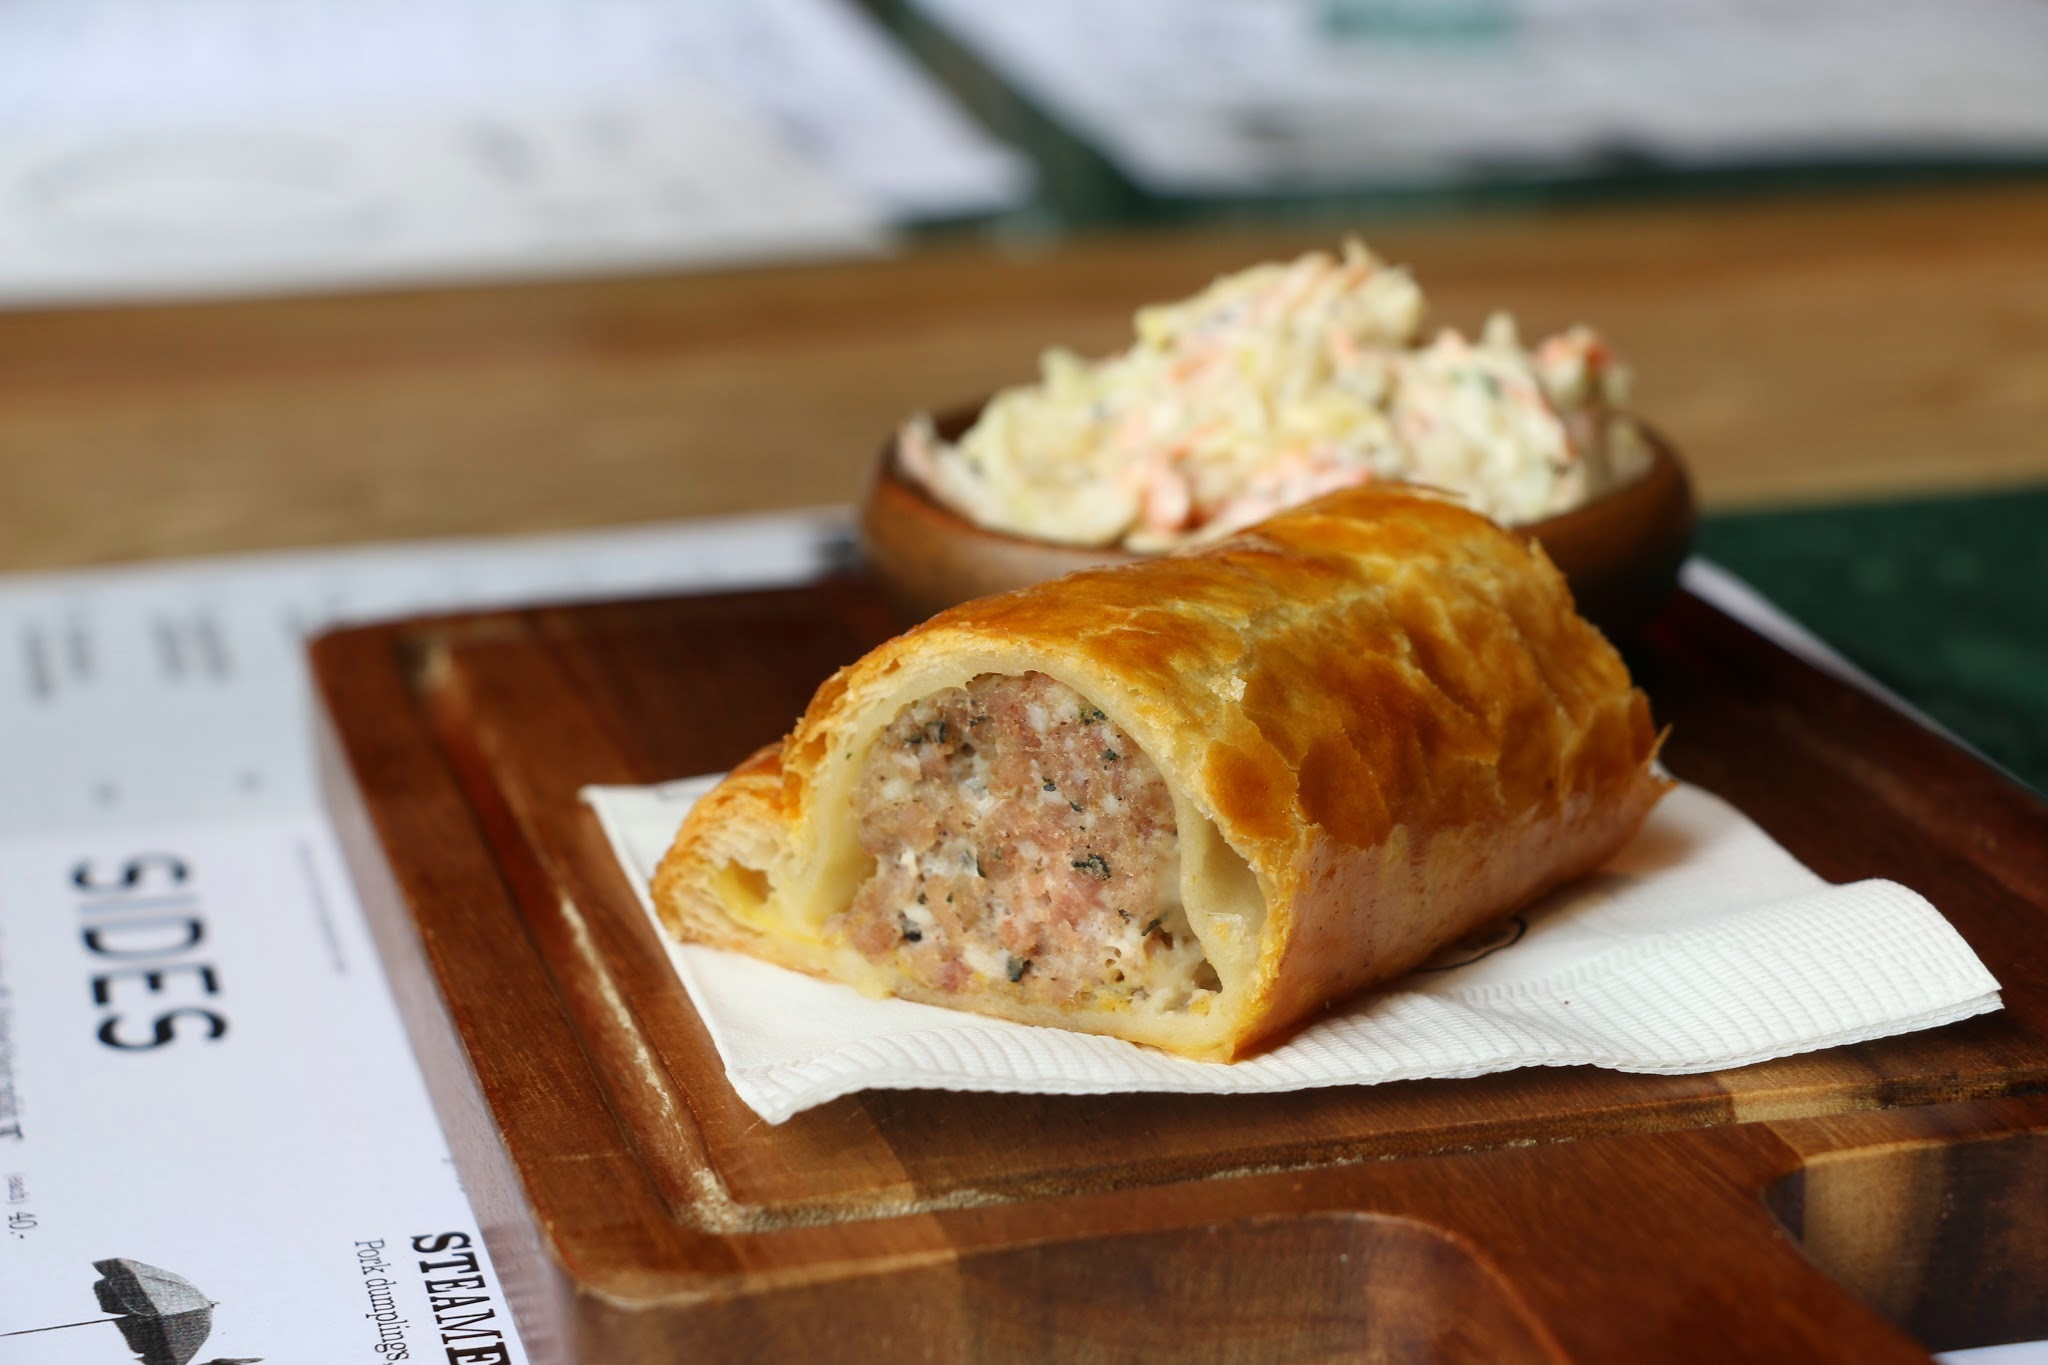 The Fat Pig, Sausage Roll